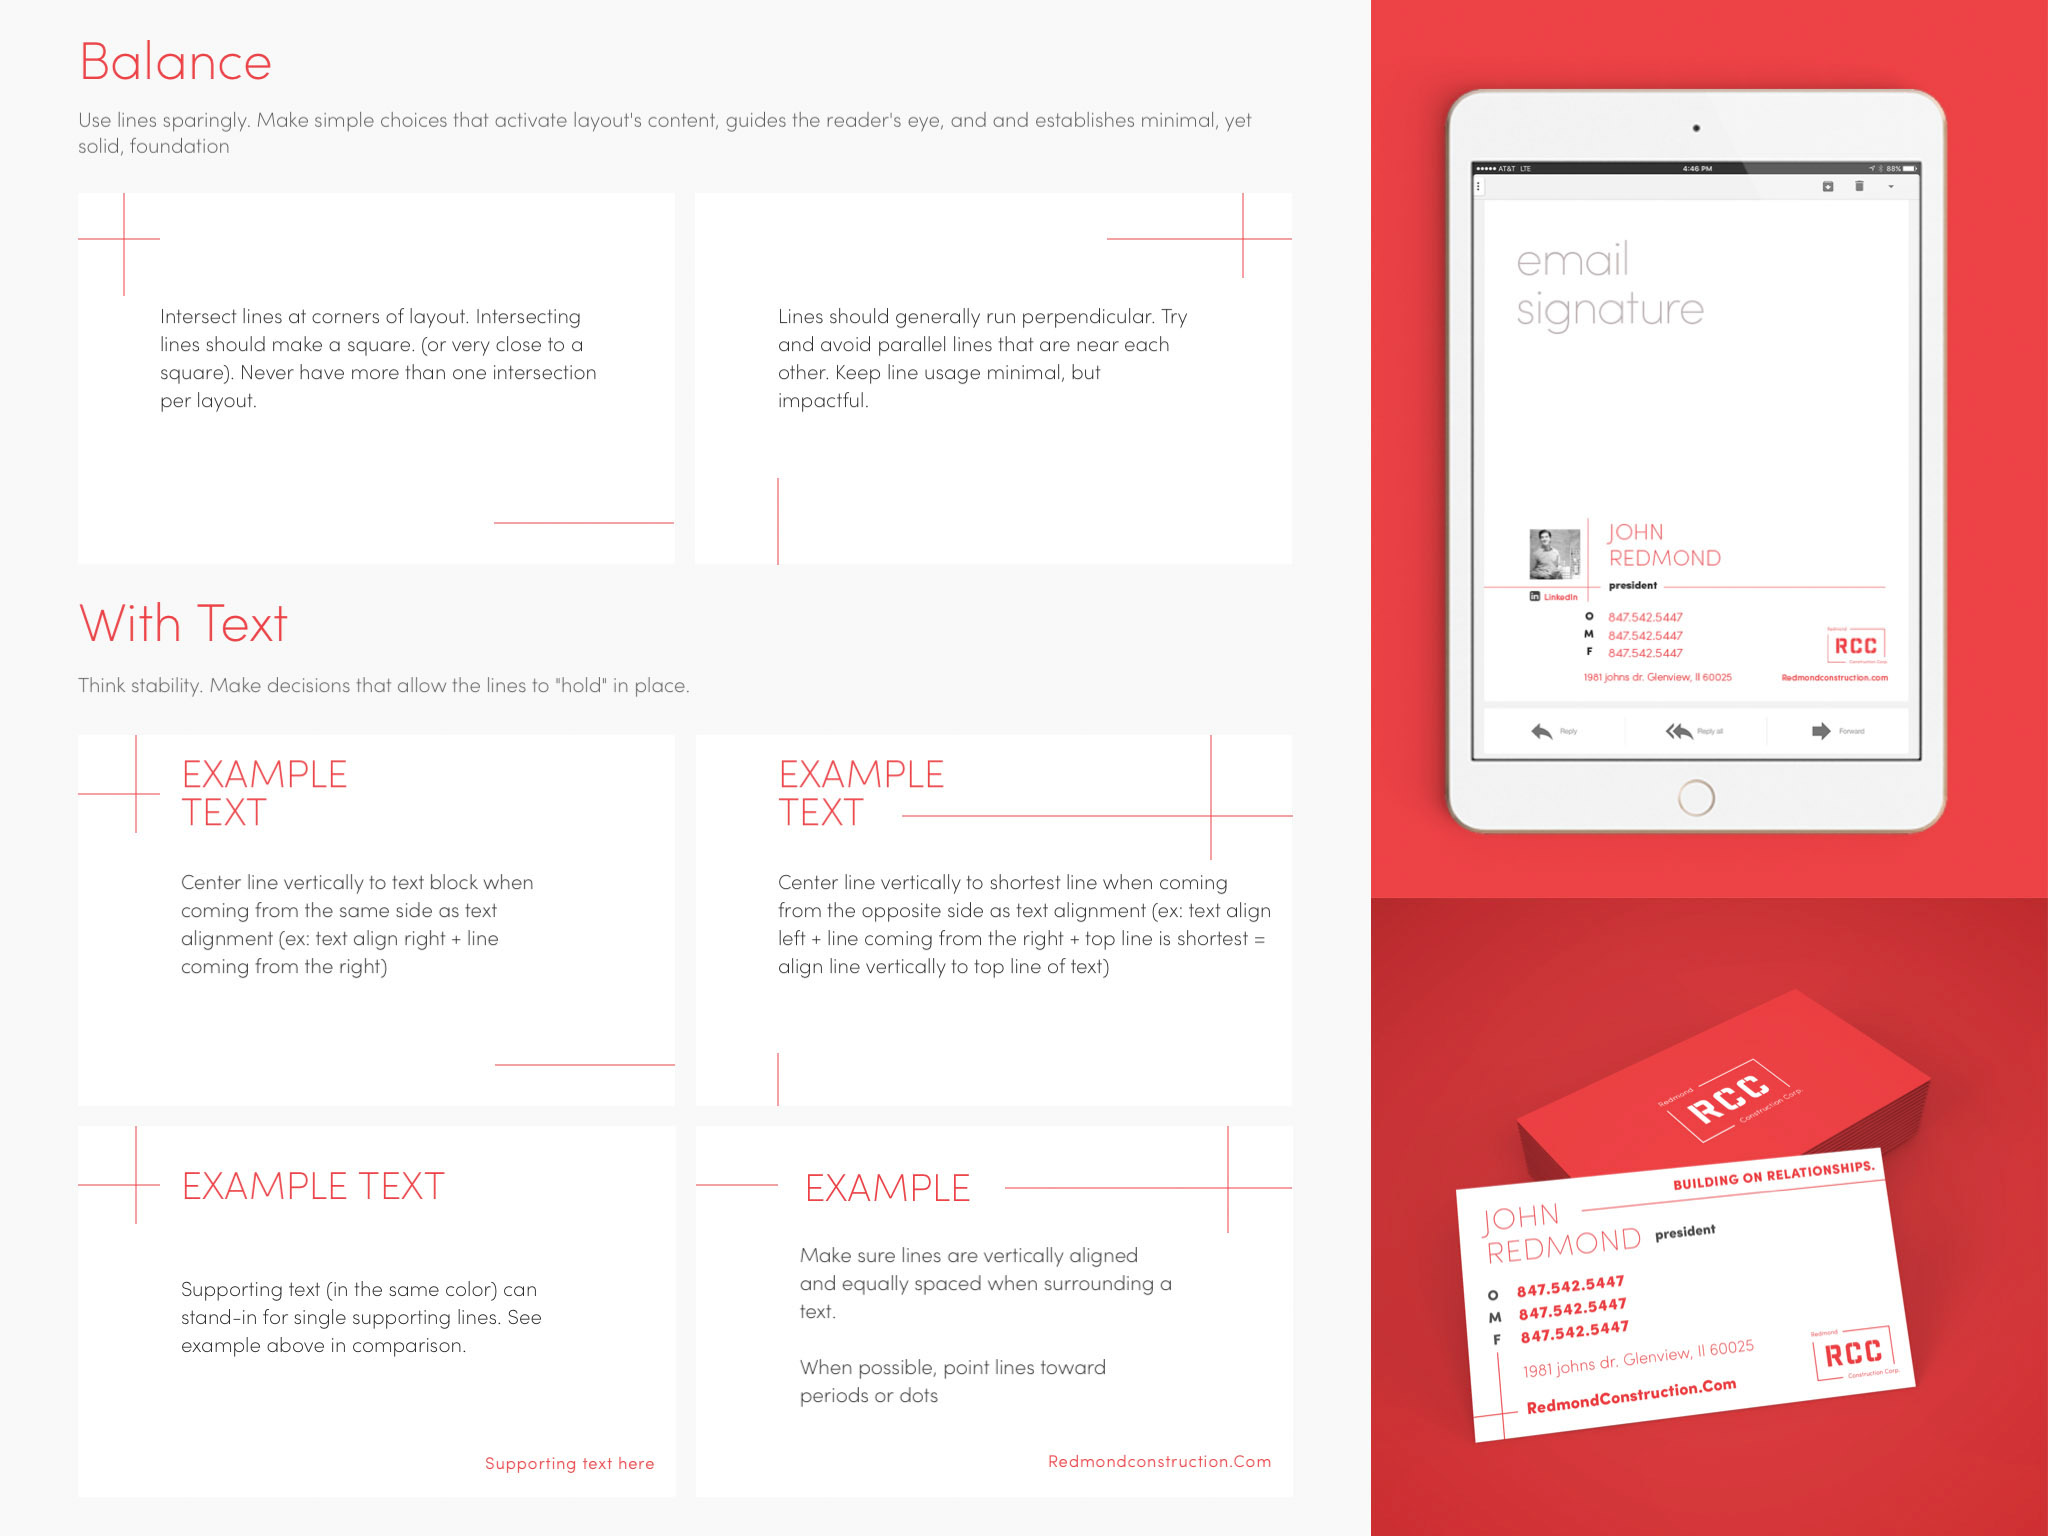 The left side of this image explains how to use the layout lines that distinguish the RCC brand, and resonate with architecture blueprints. The right side of this image is a mockup of an image that shows RCC's email signature, and business card.